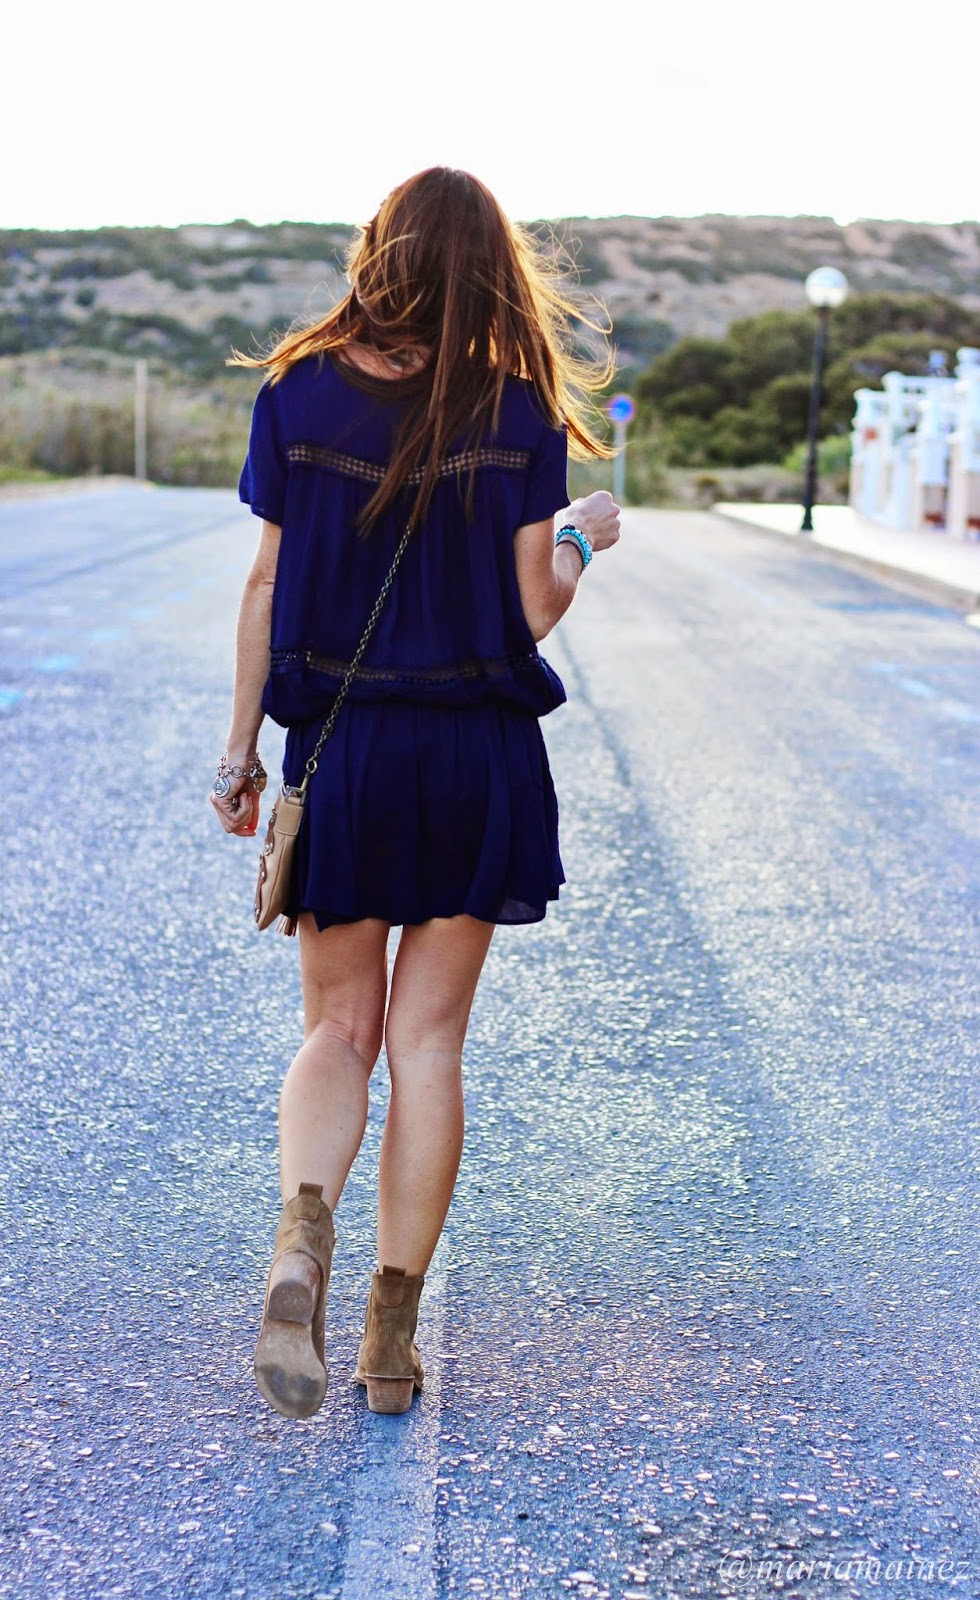 Estilo Boho- Coachella Look - botines verano- Sheinside dress - Low Cost